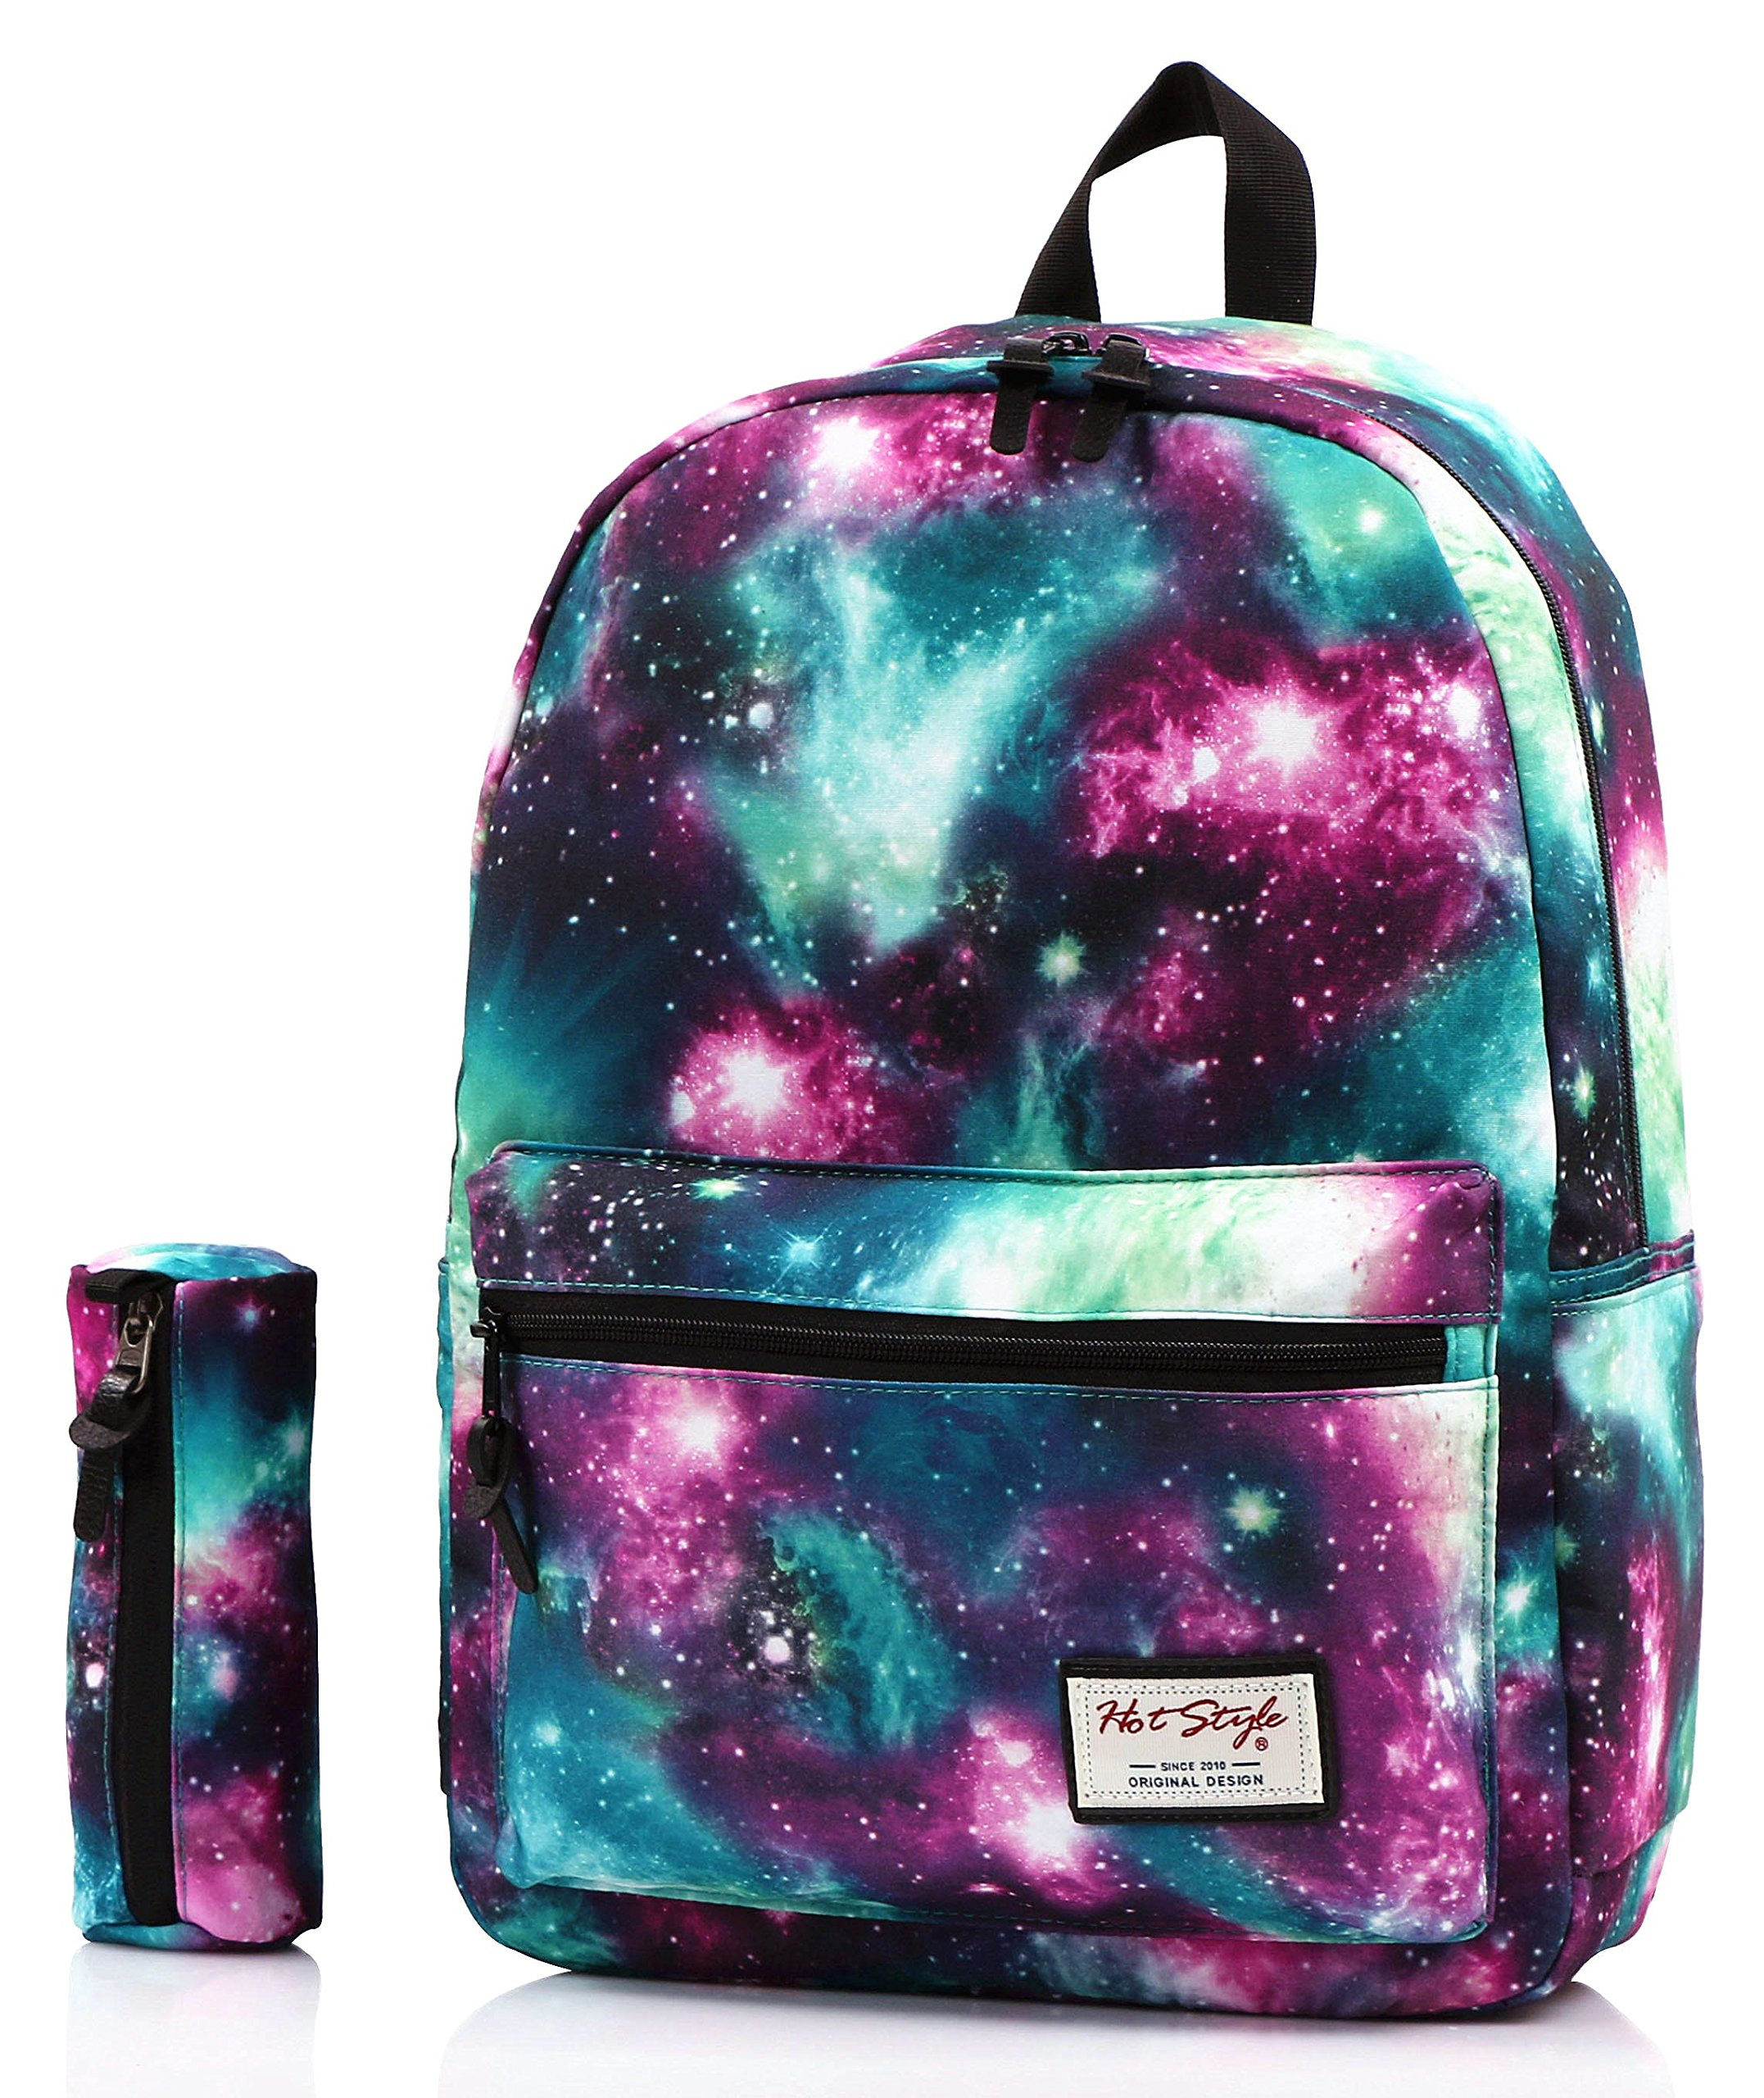 hotstyle TRENDYMAX Galaxy Backpack Cute for School | Green | Bundles with Matching Pencil Bag by hotstyle